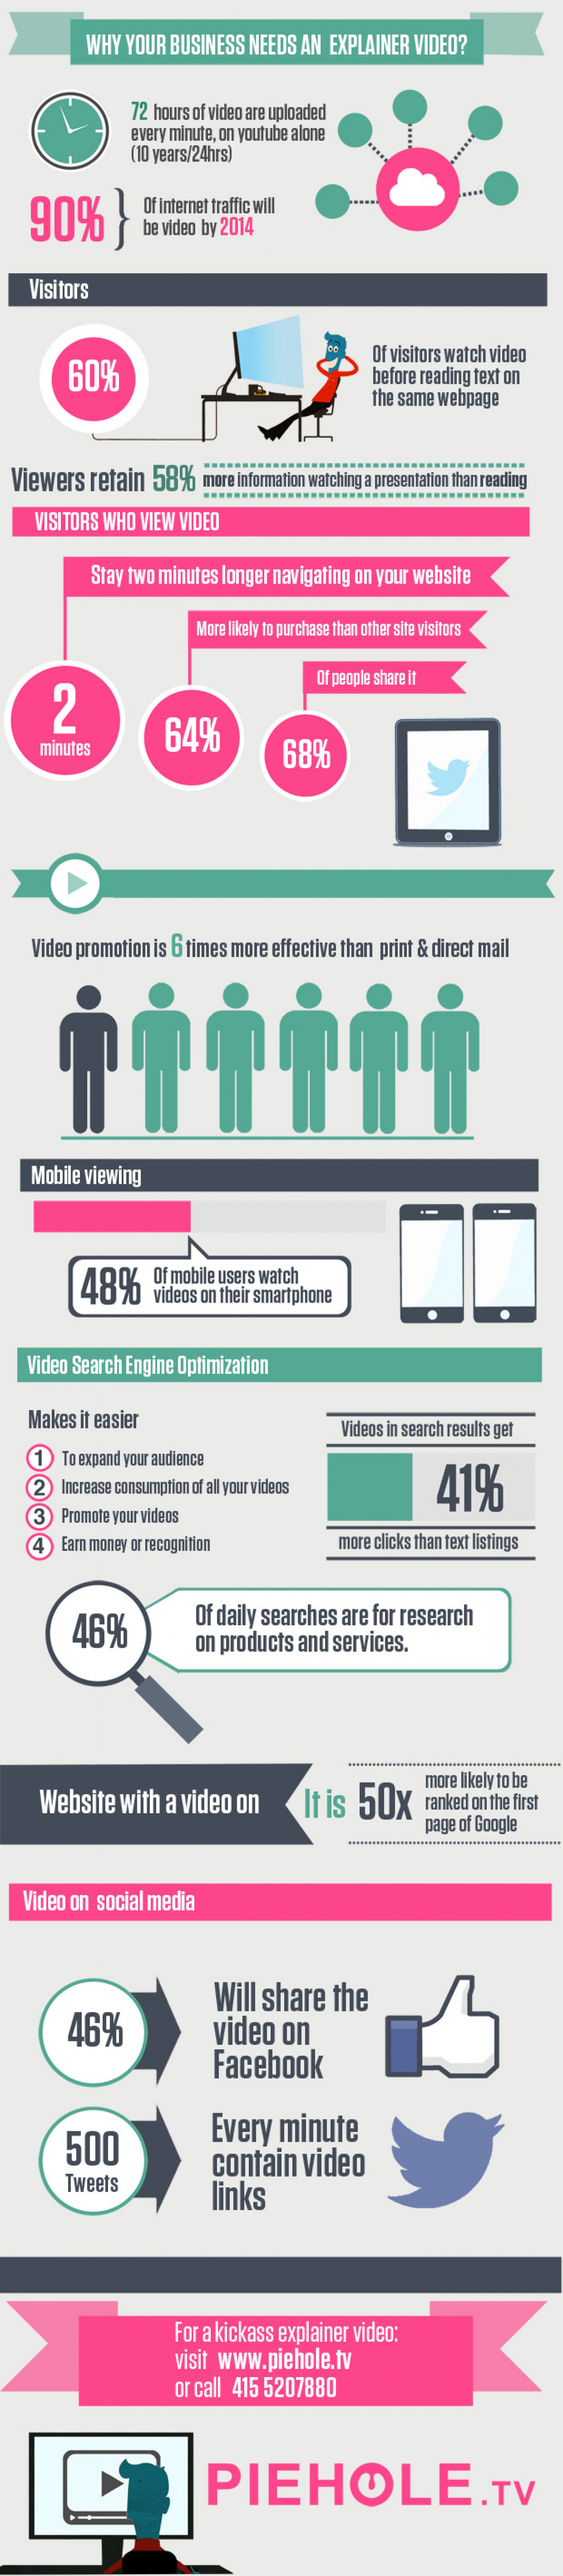 Why your business needs an explainer video  Infographic